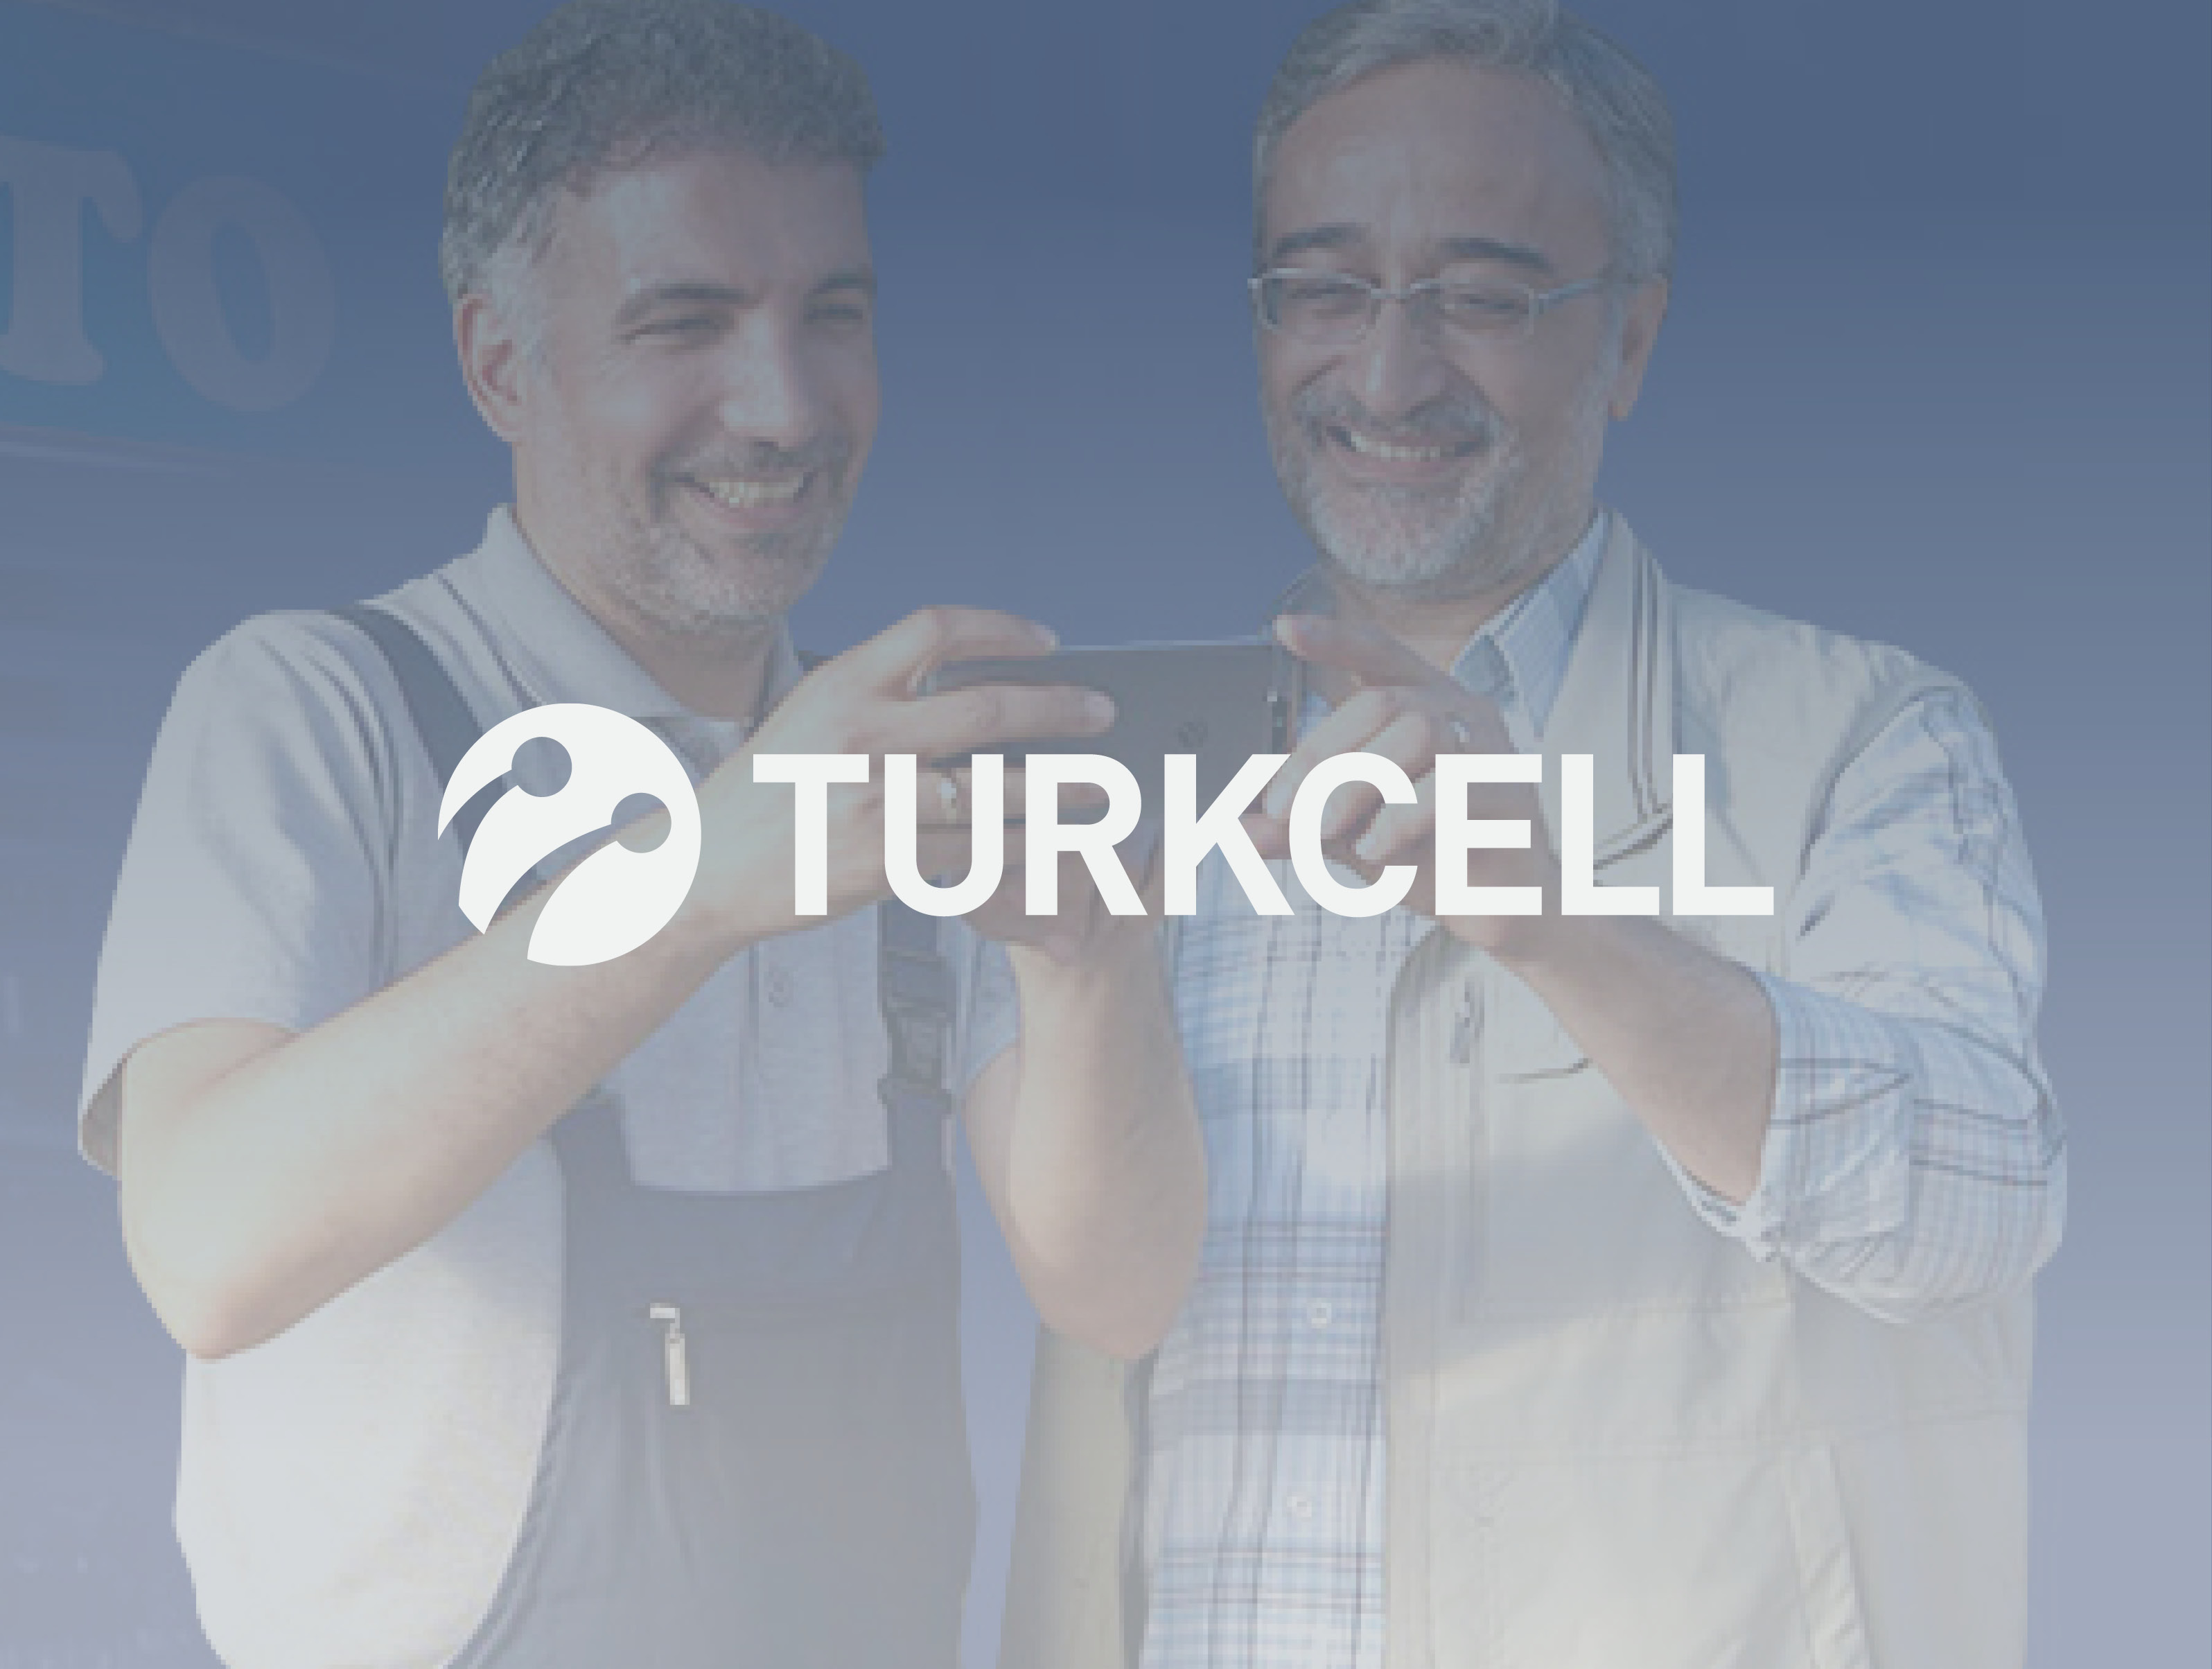 Turkcell-Customer Pages